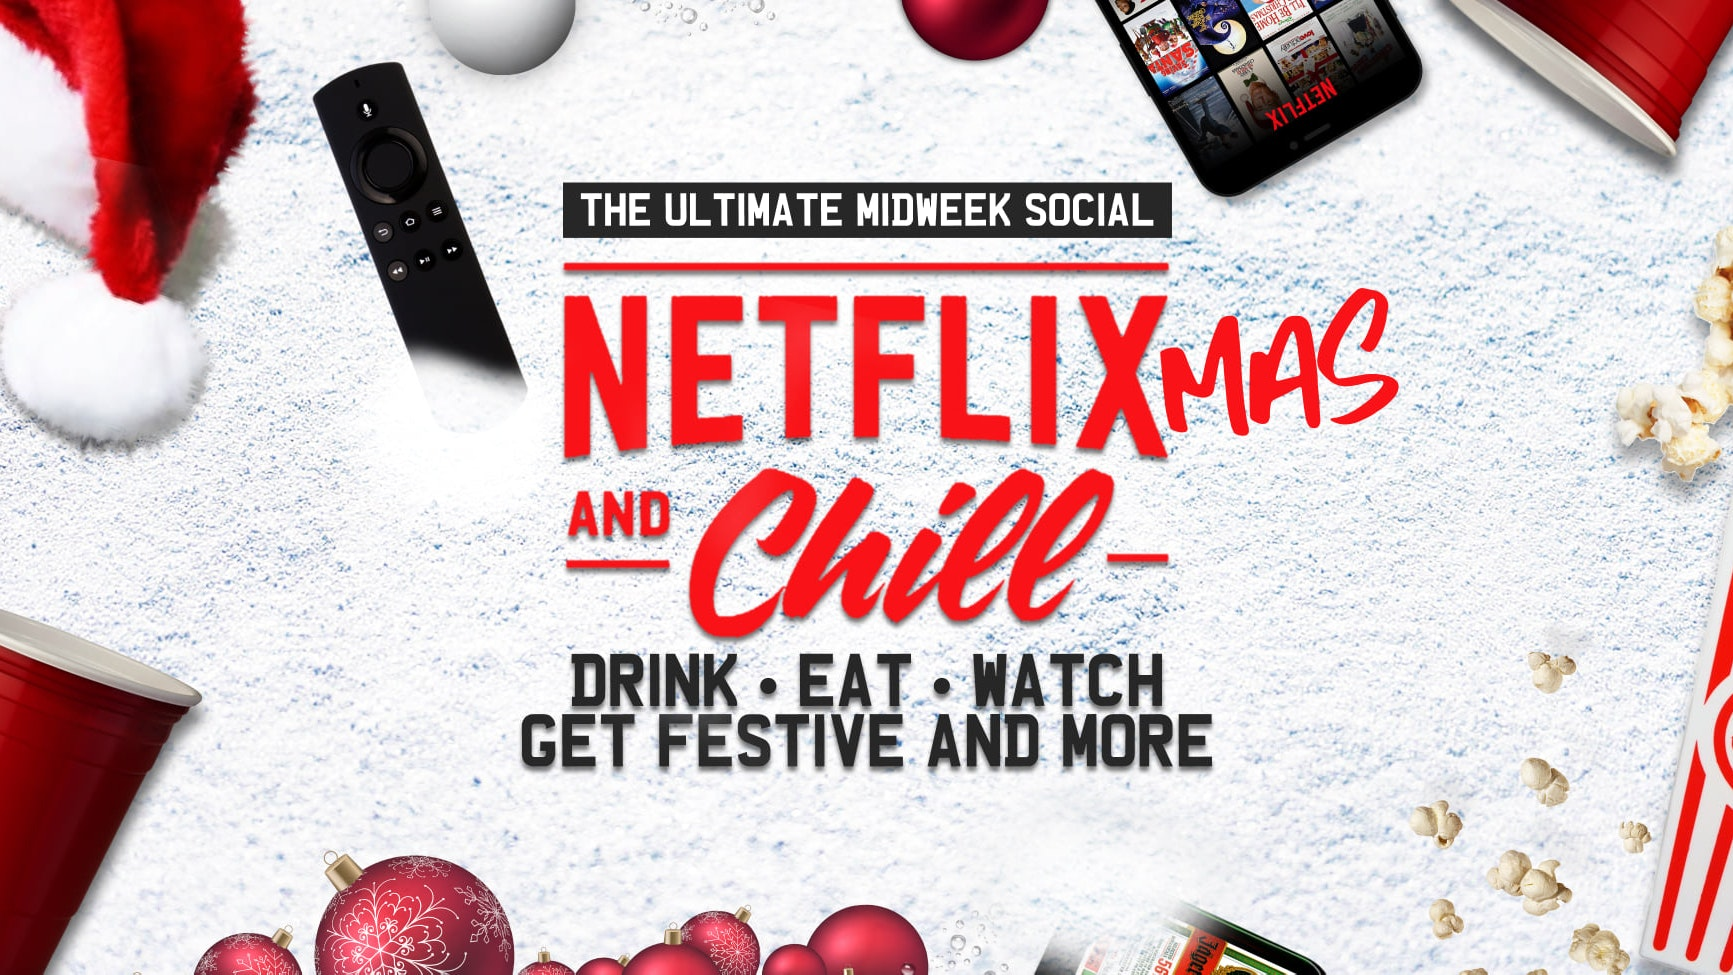 Netflix & Chill 👀 CHRISTMAS MOVIE NIGHT 🎄 Films = Love Actually or Elf ❄️